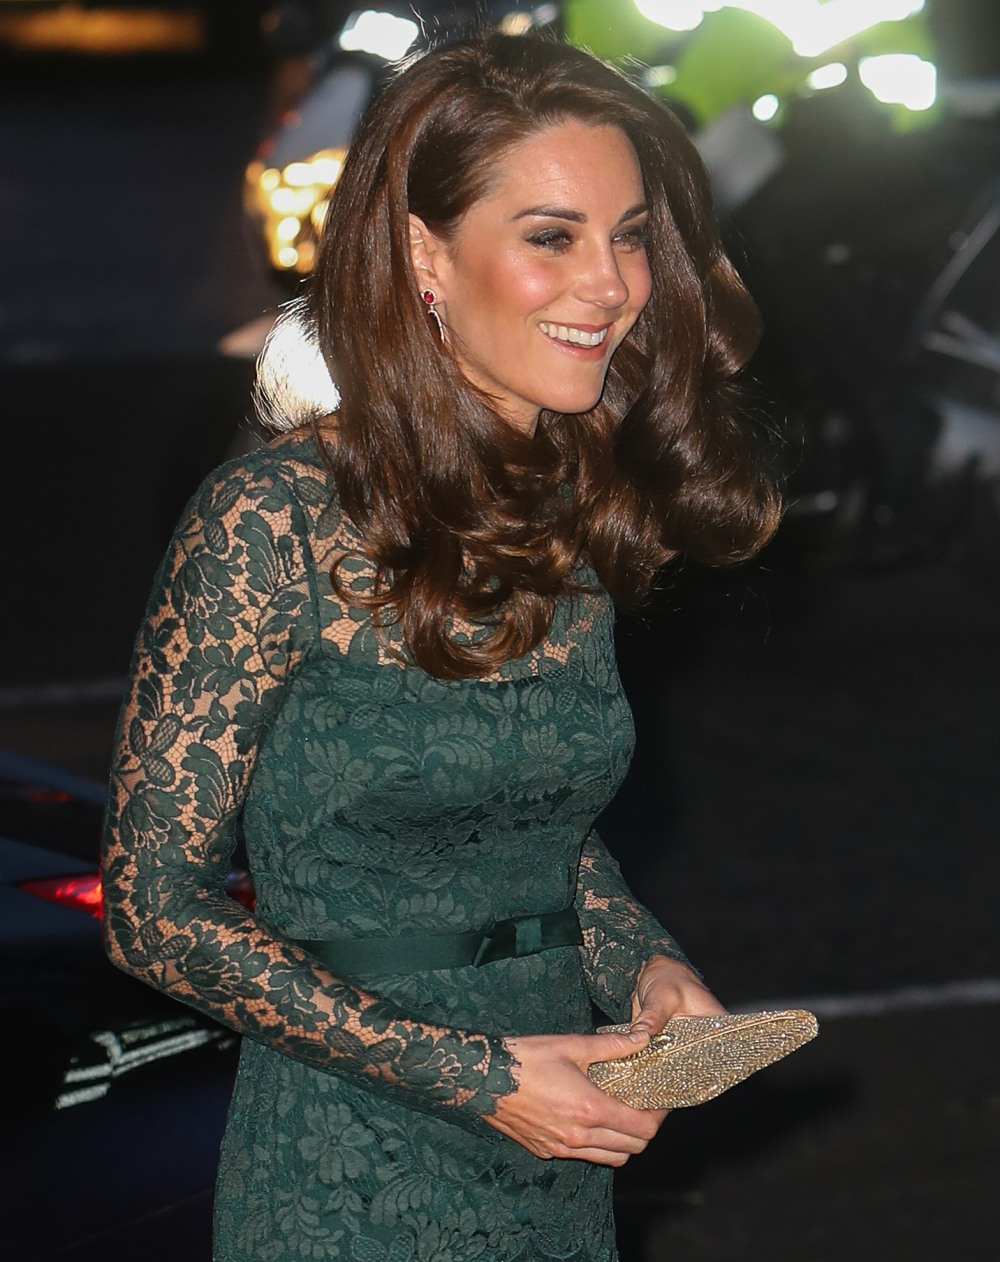 The Duchess of Cambridge arrives at The Portrait Gala 2017